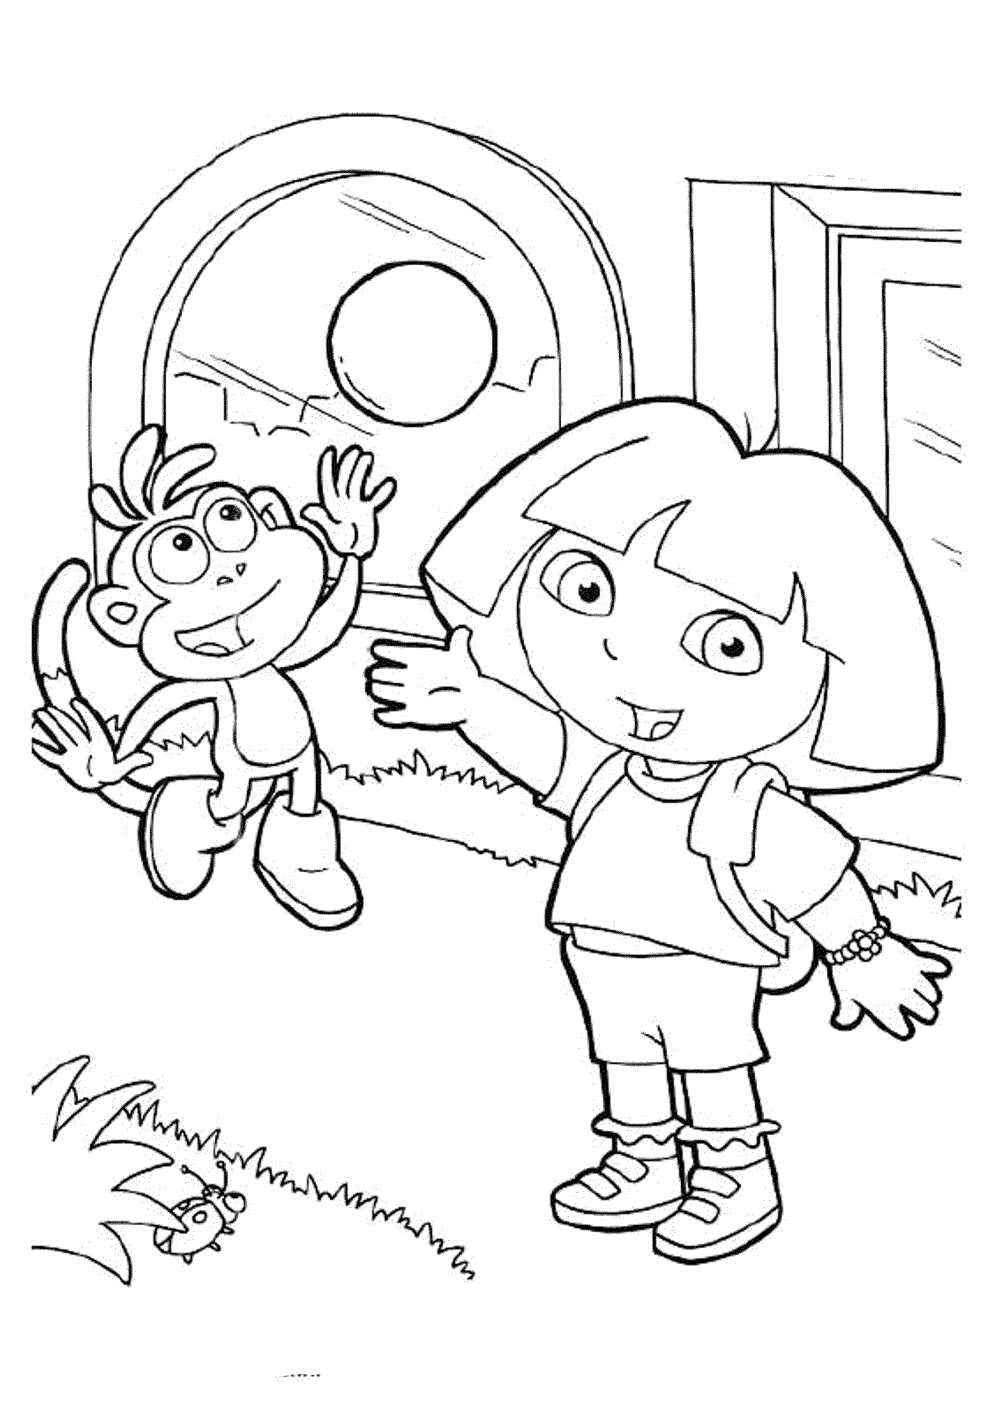 pictures of dora to color dora colouring pictures 2 coloring pages to print to pictures of color dora